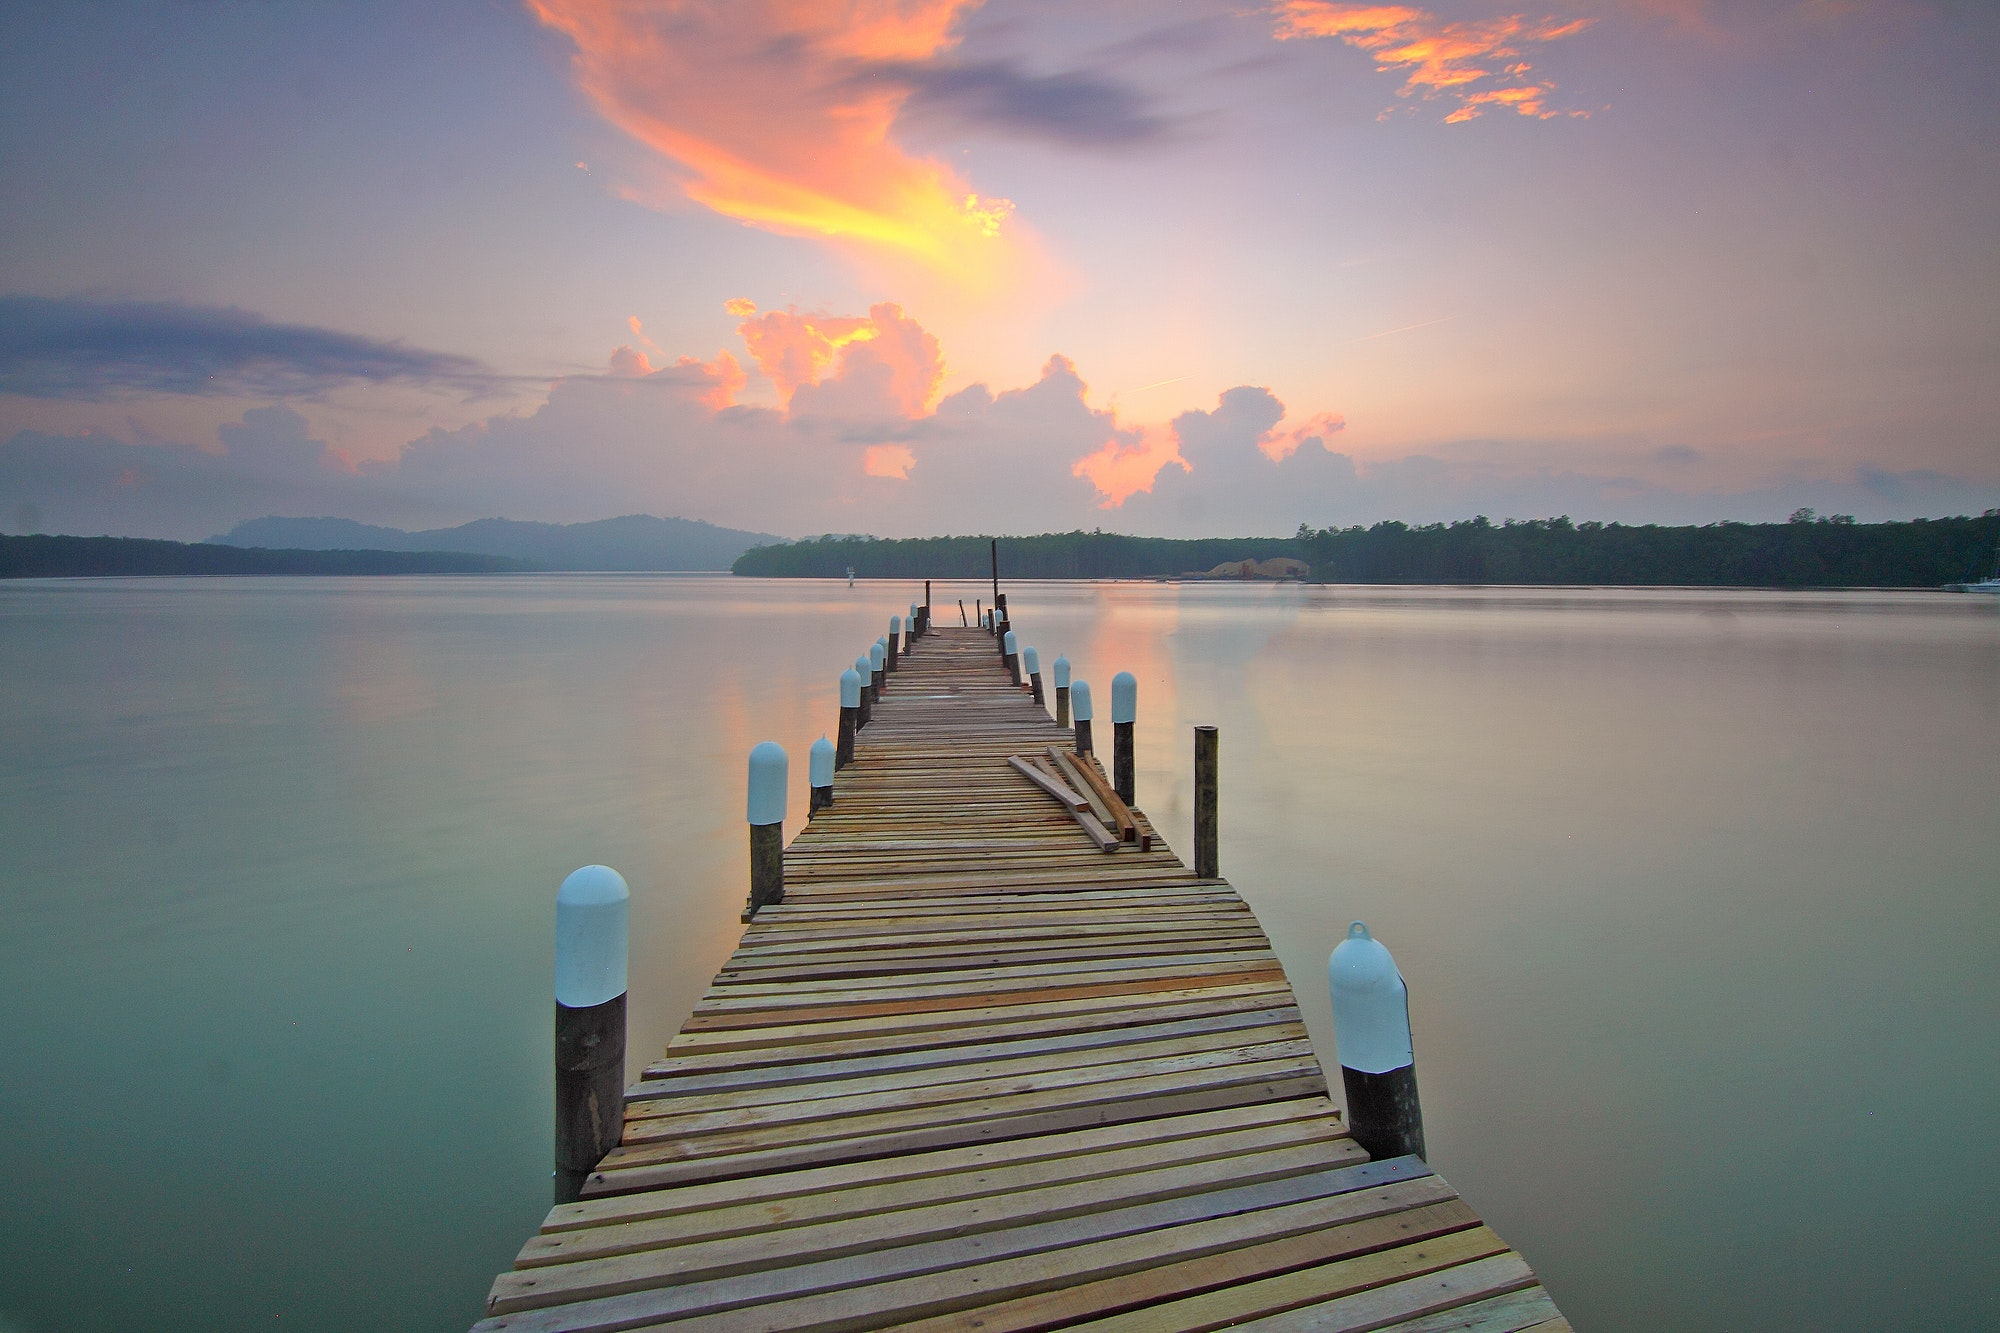 Brown Wooden Footbridge on Body of Water during Sunrise, Dawn, Dock, Dusk, Jetty, HQ Photo